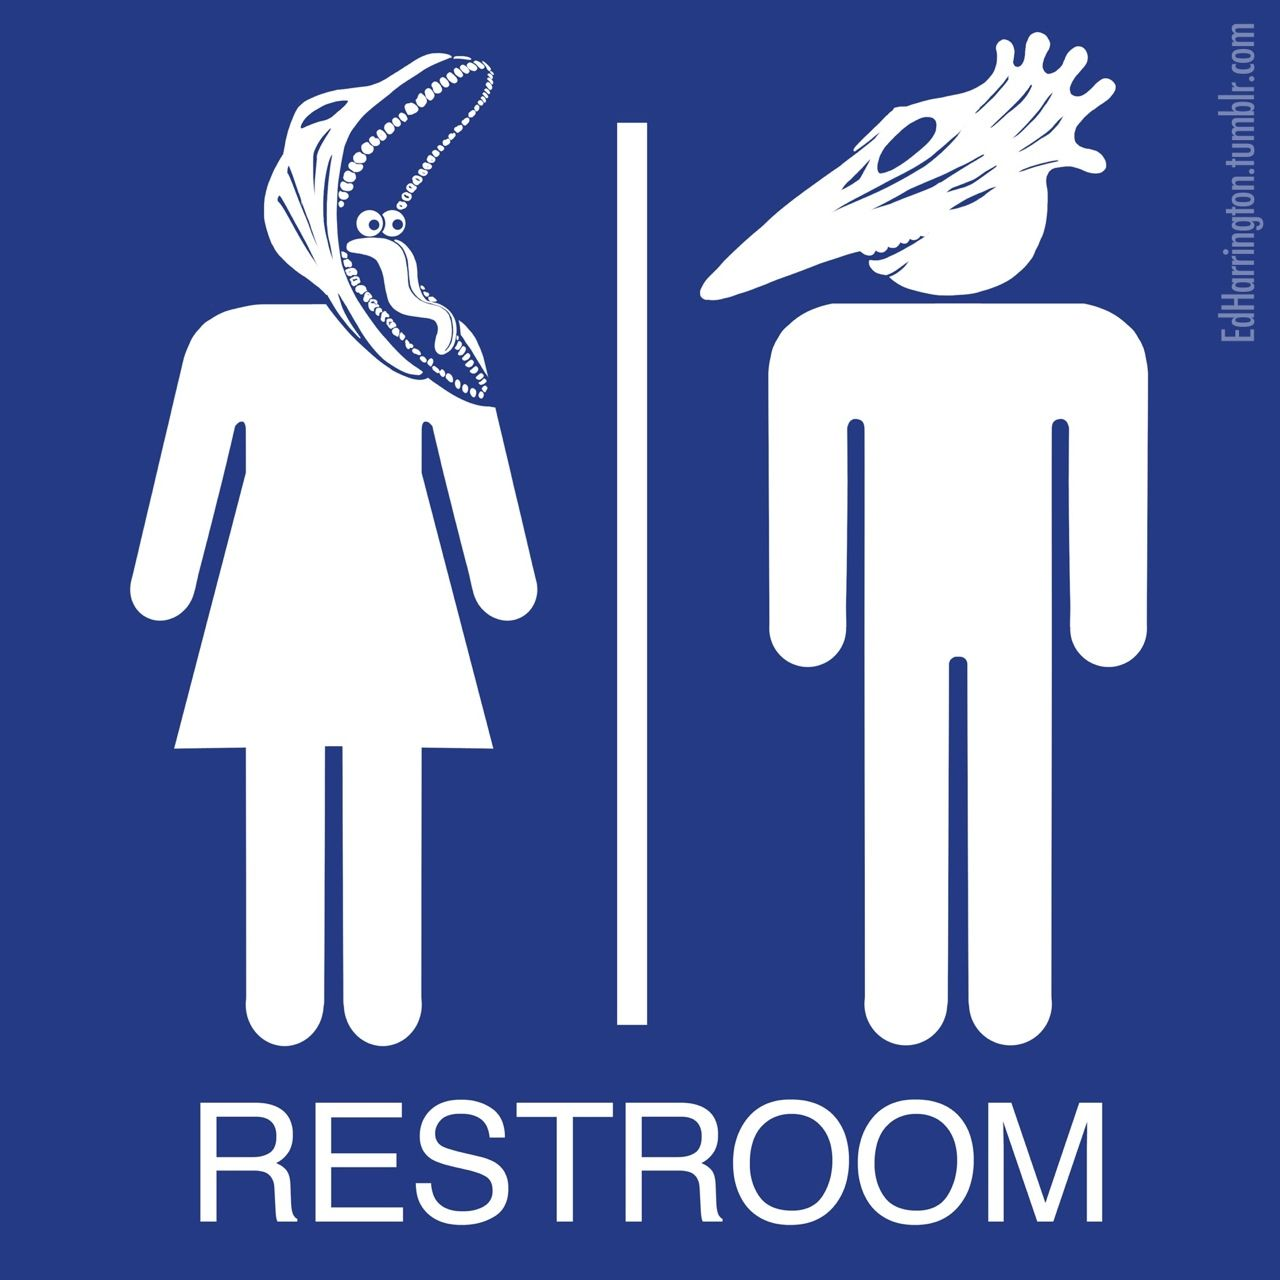 Bathroom Signs Tumblr lol, i want a print of this for the bathroom. xd @lilliemonster